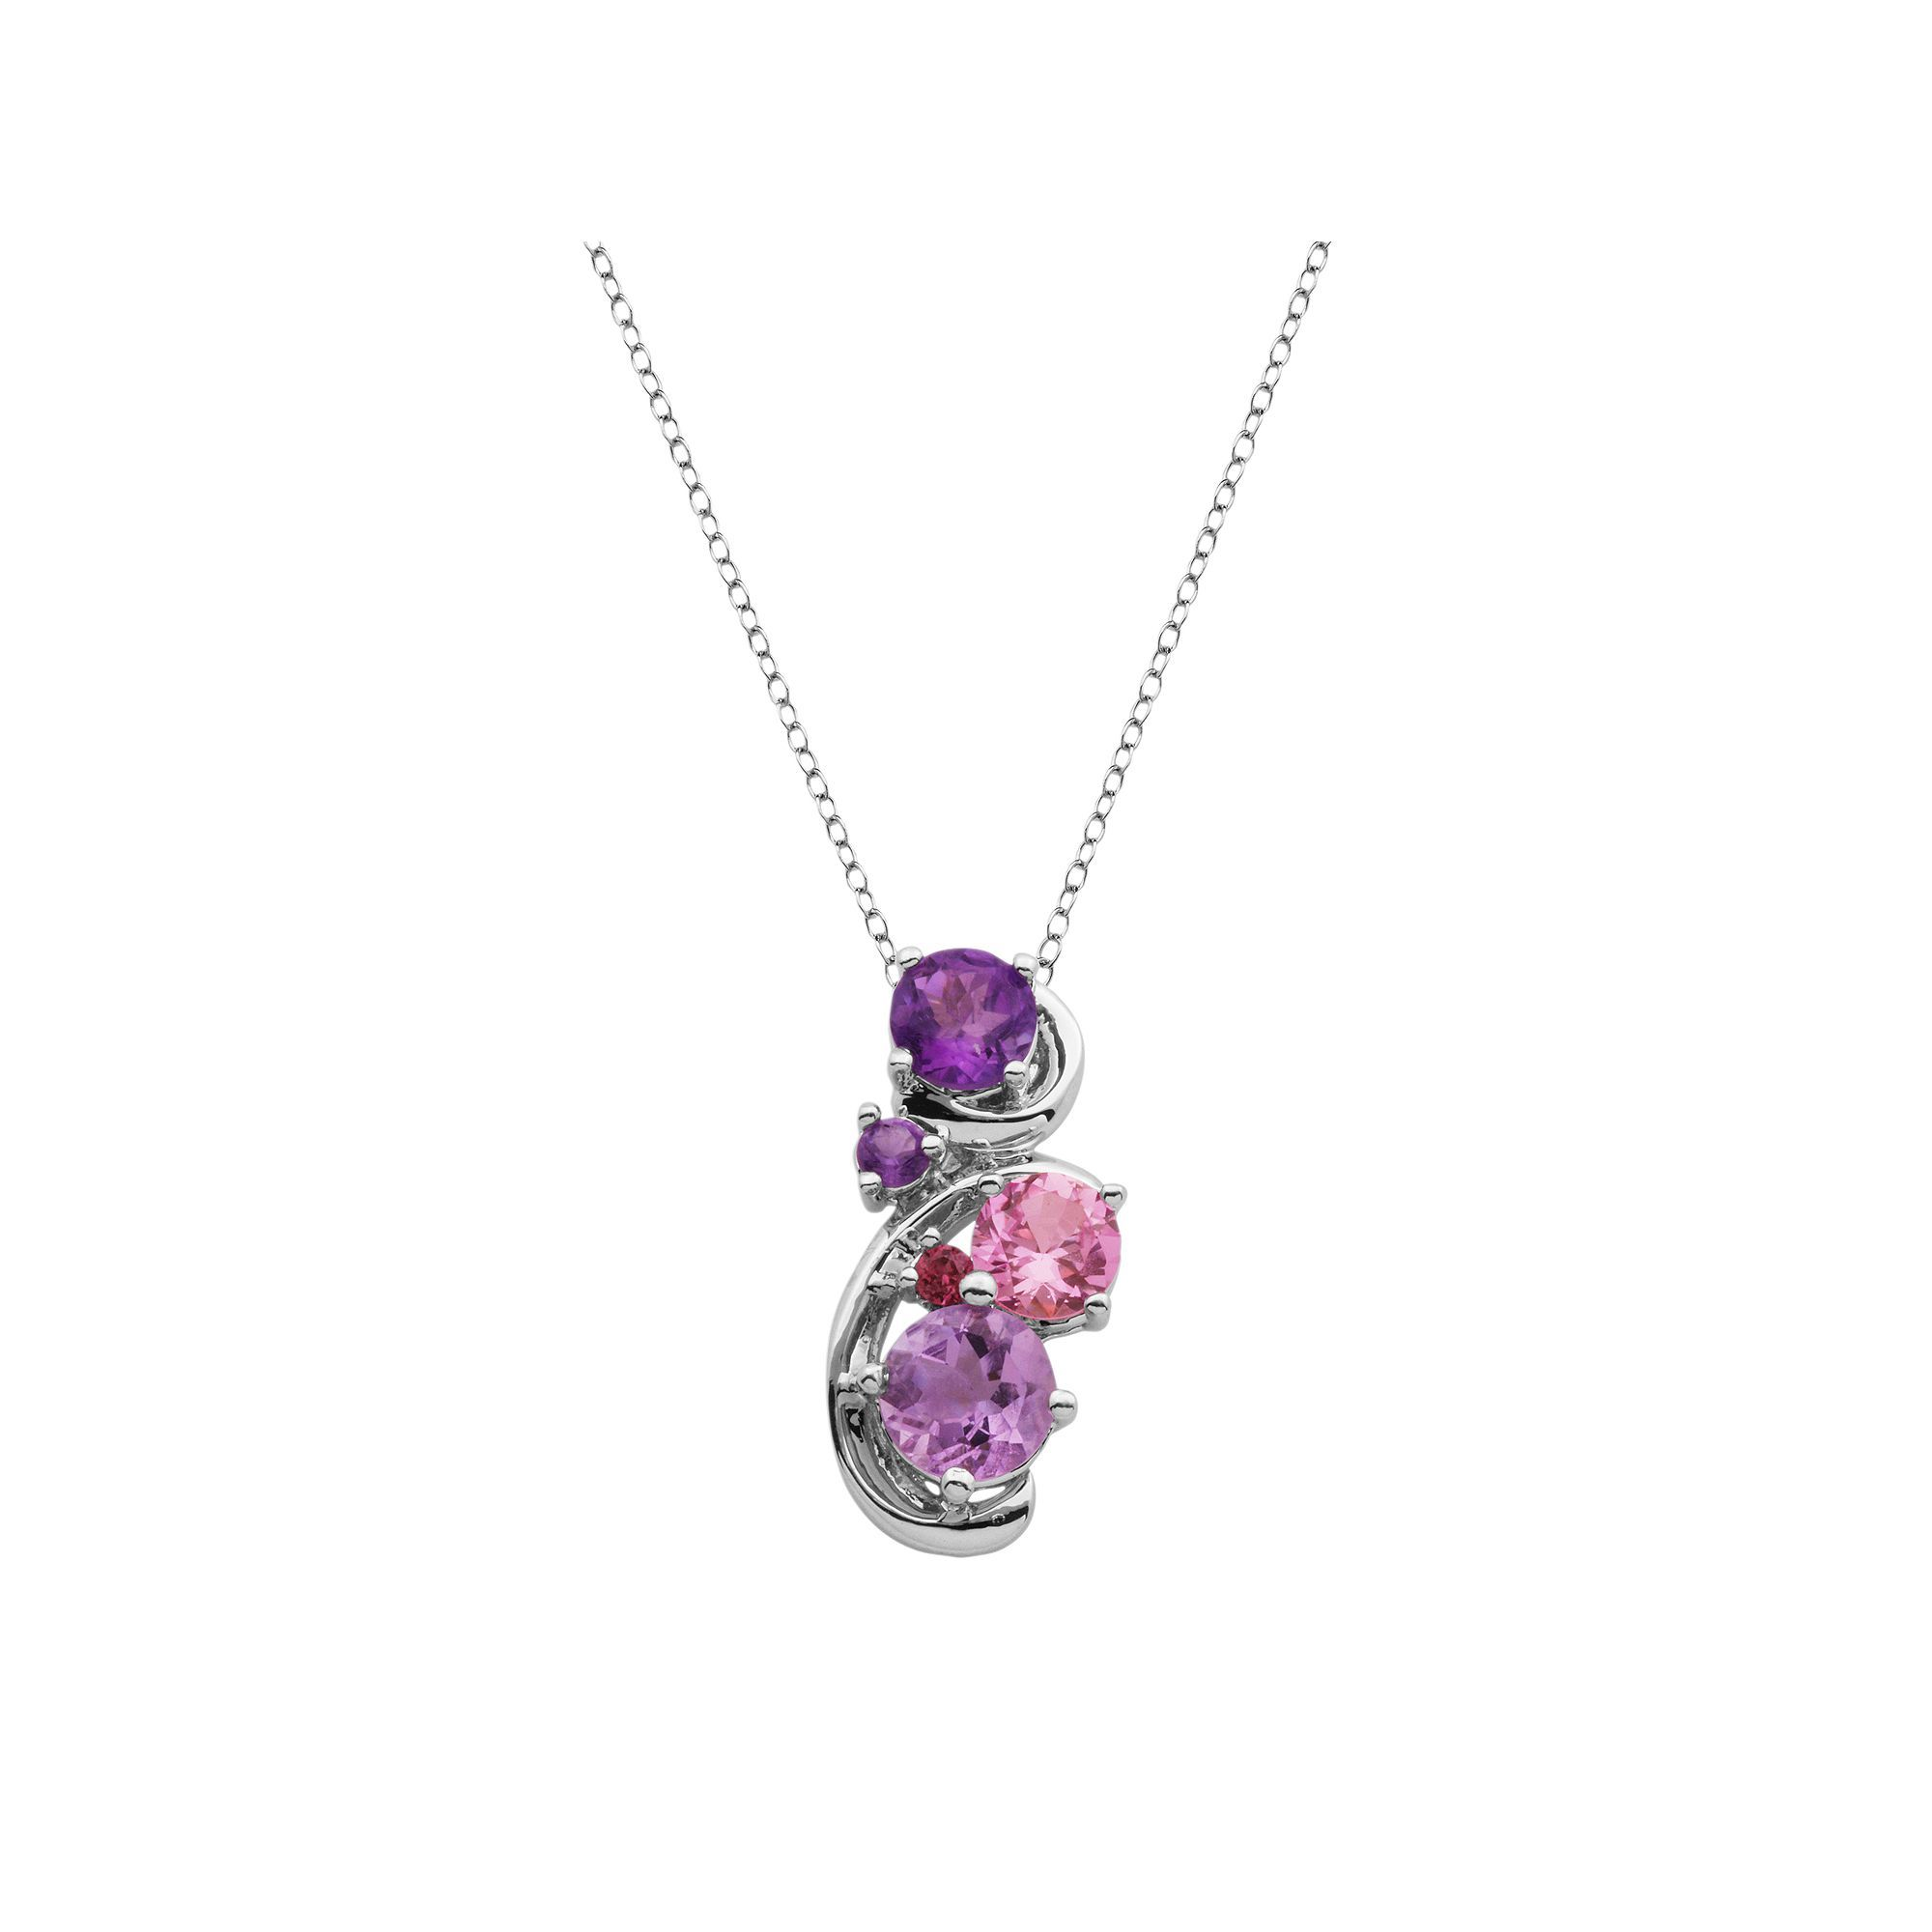 linda of blackbourn druzy sterling collections rhodolite a pendant garnet silver with il jewelry fullxfull necklaces rose focal in thorn and